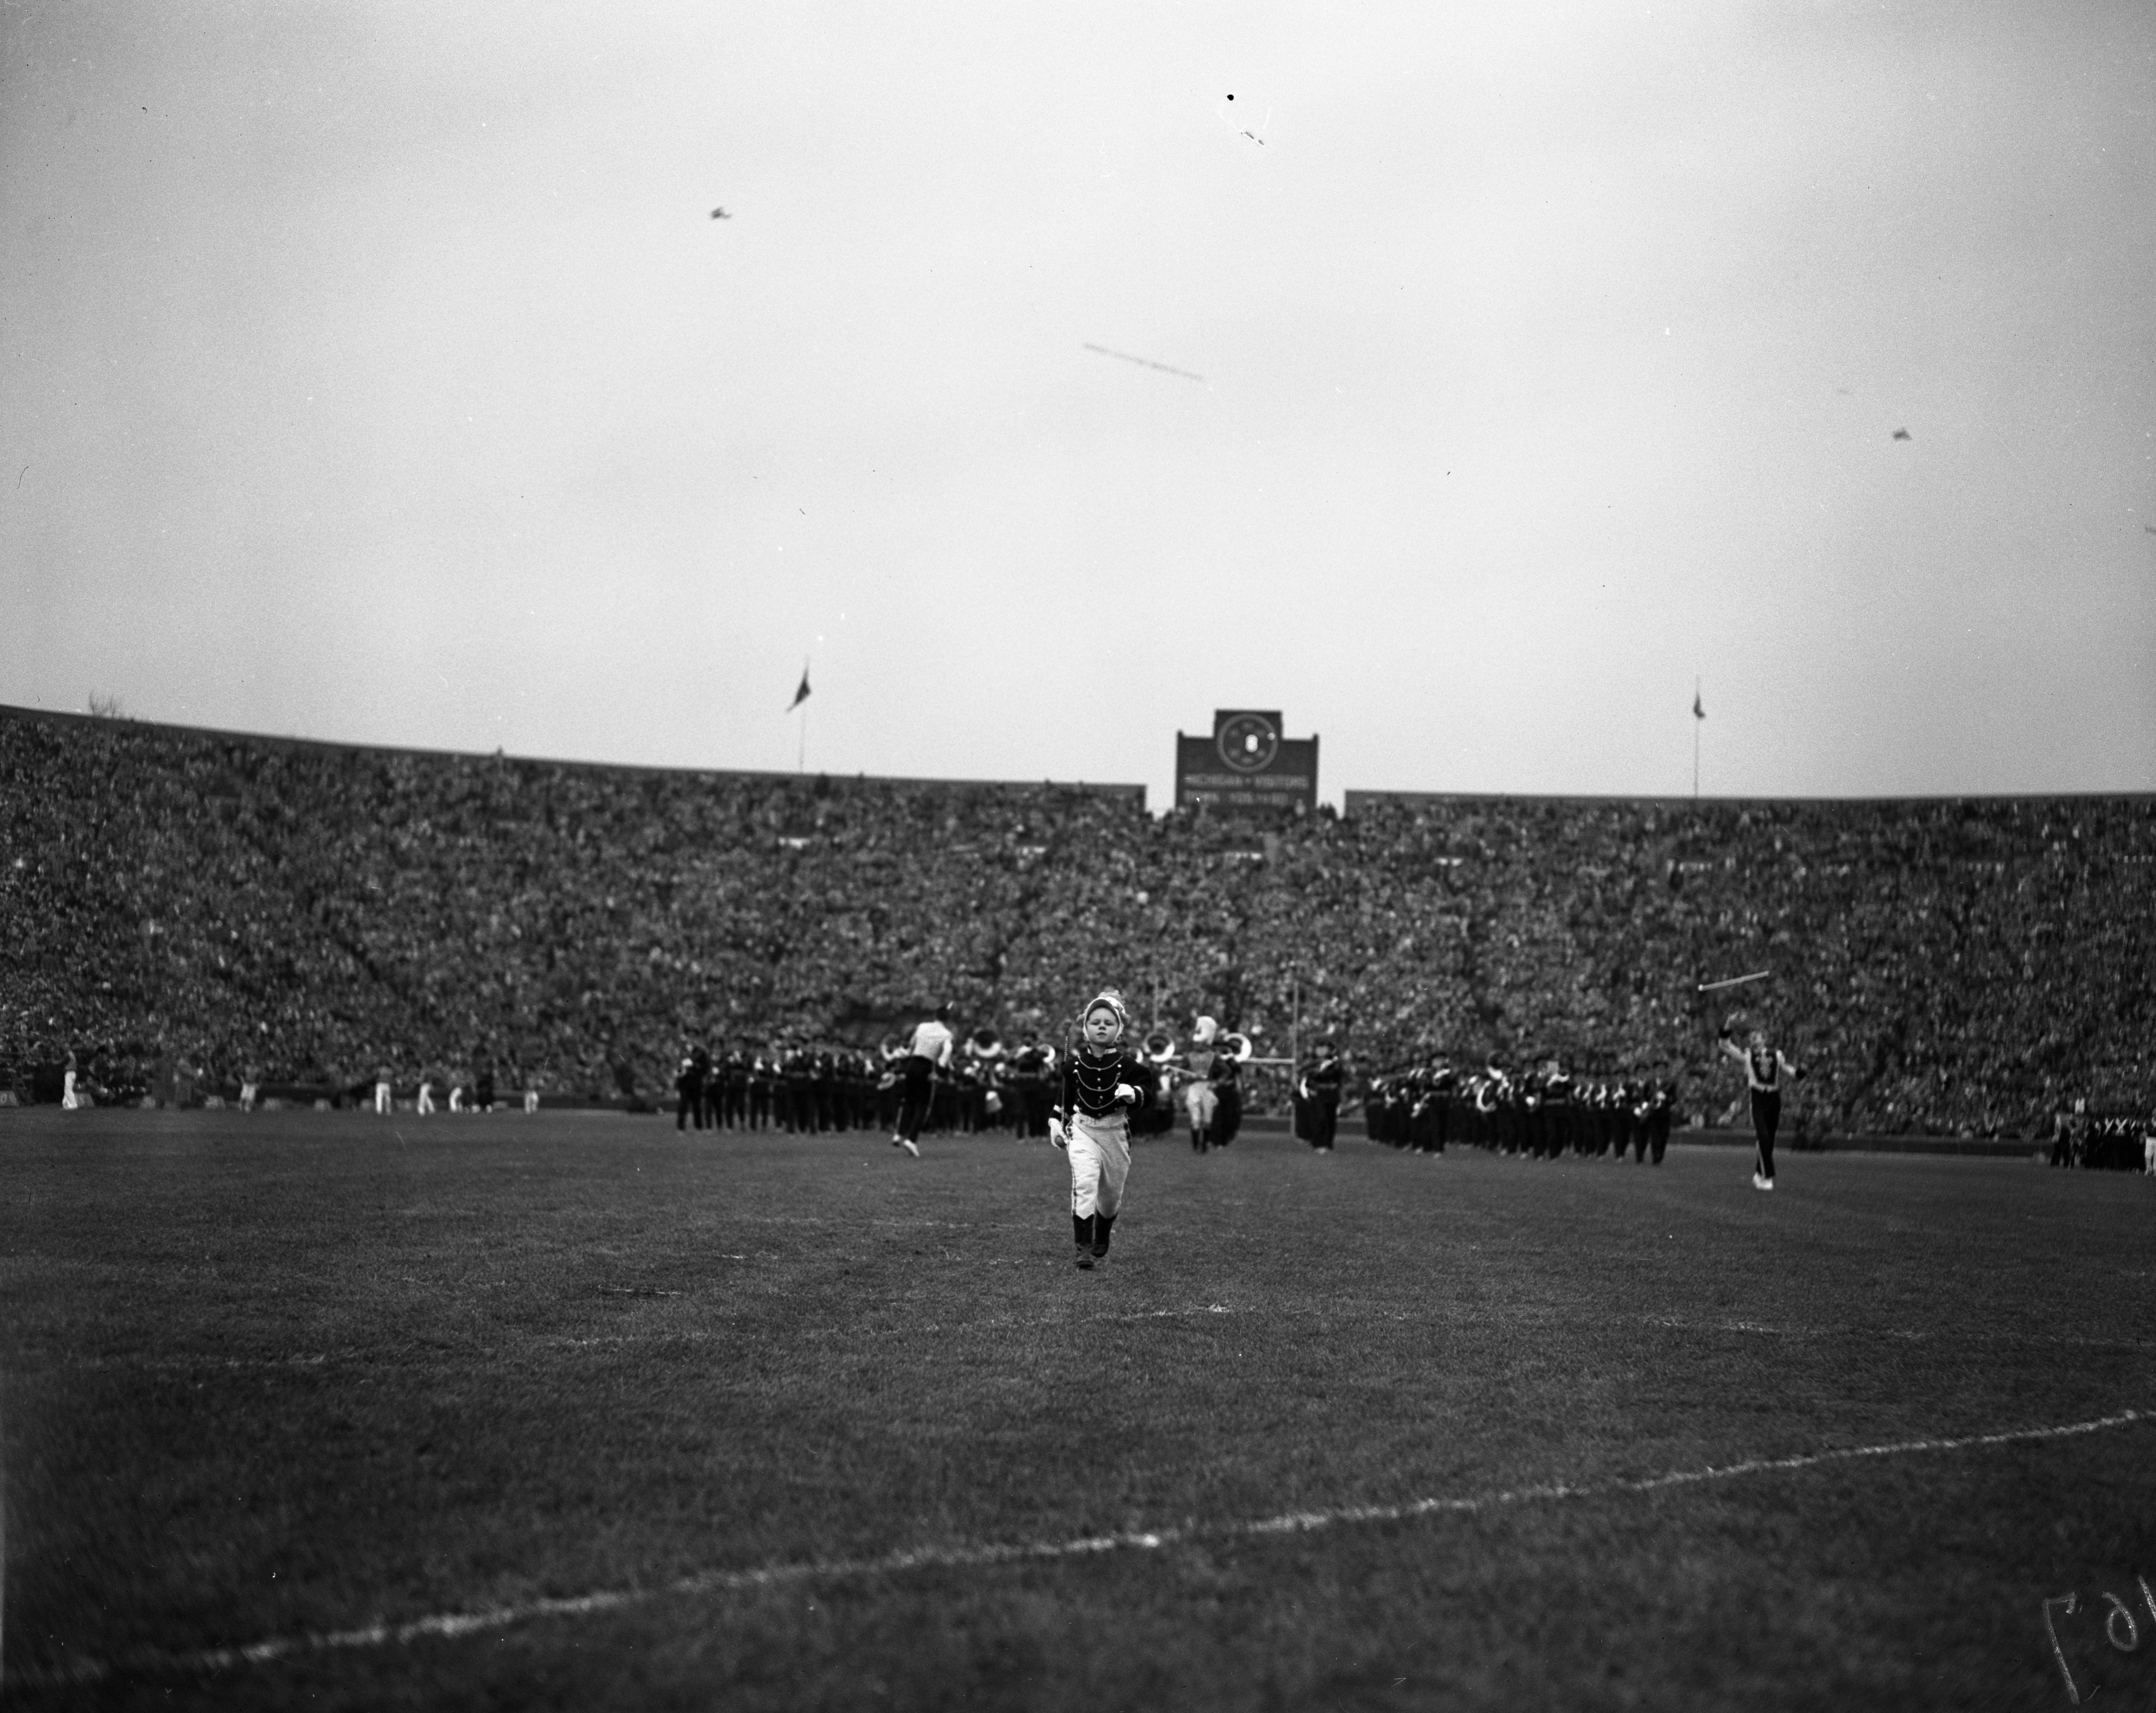 4-year-old Eugene Waxman leads the University of Michigan Marching Band down the field, November 1949 image